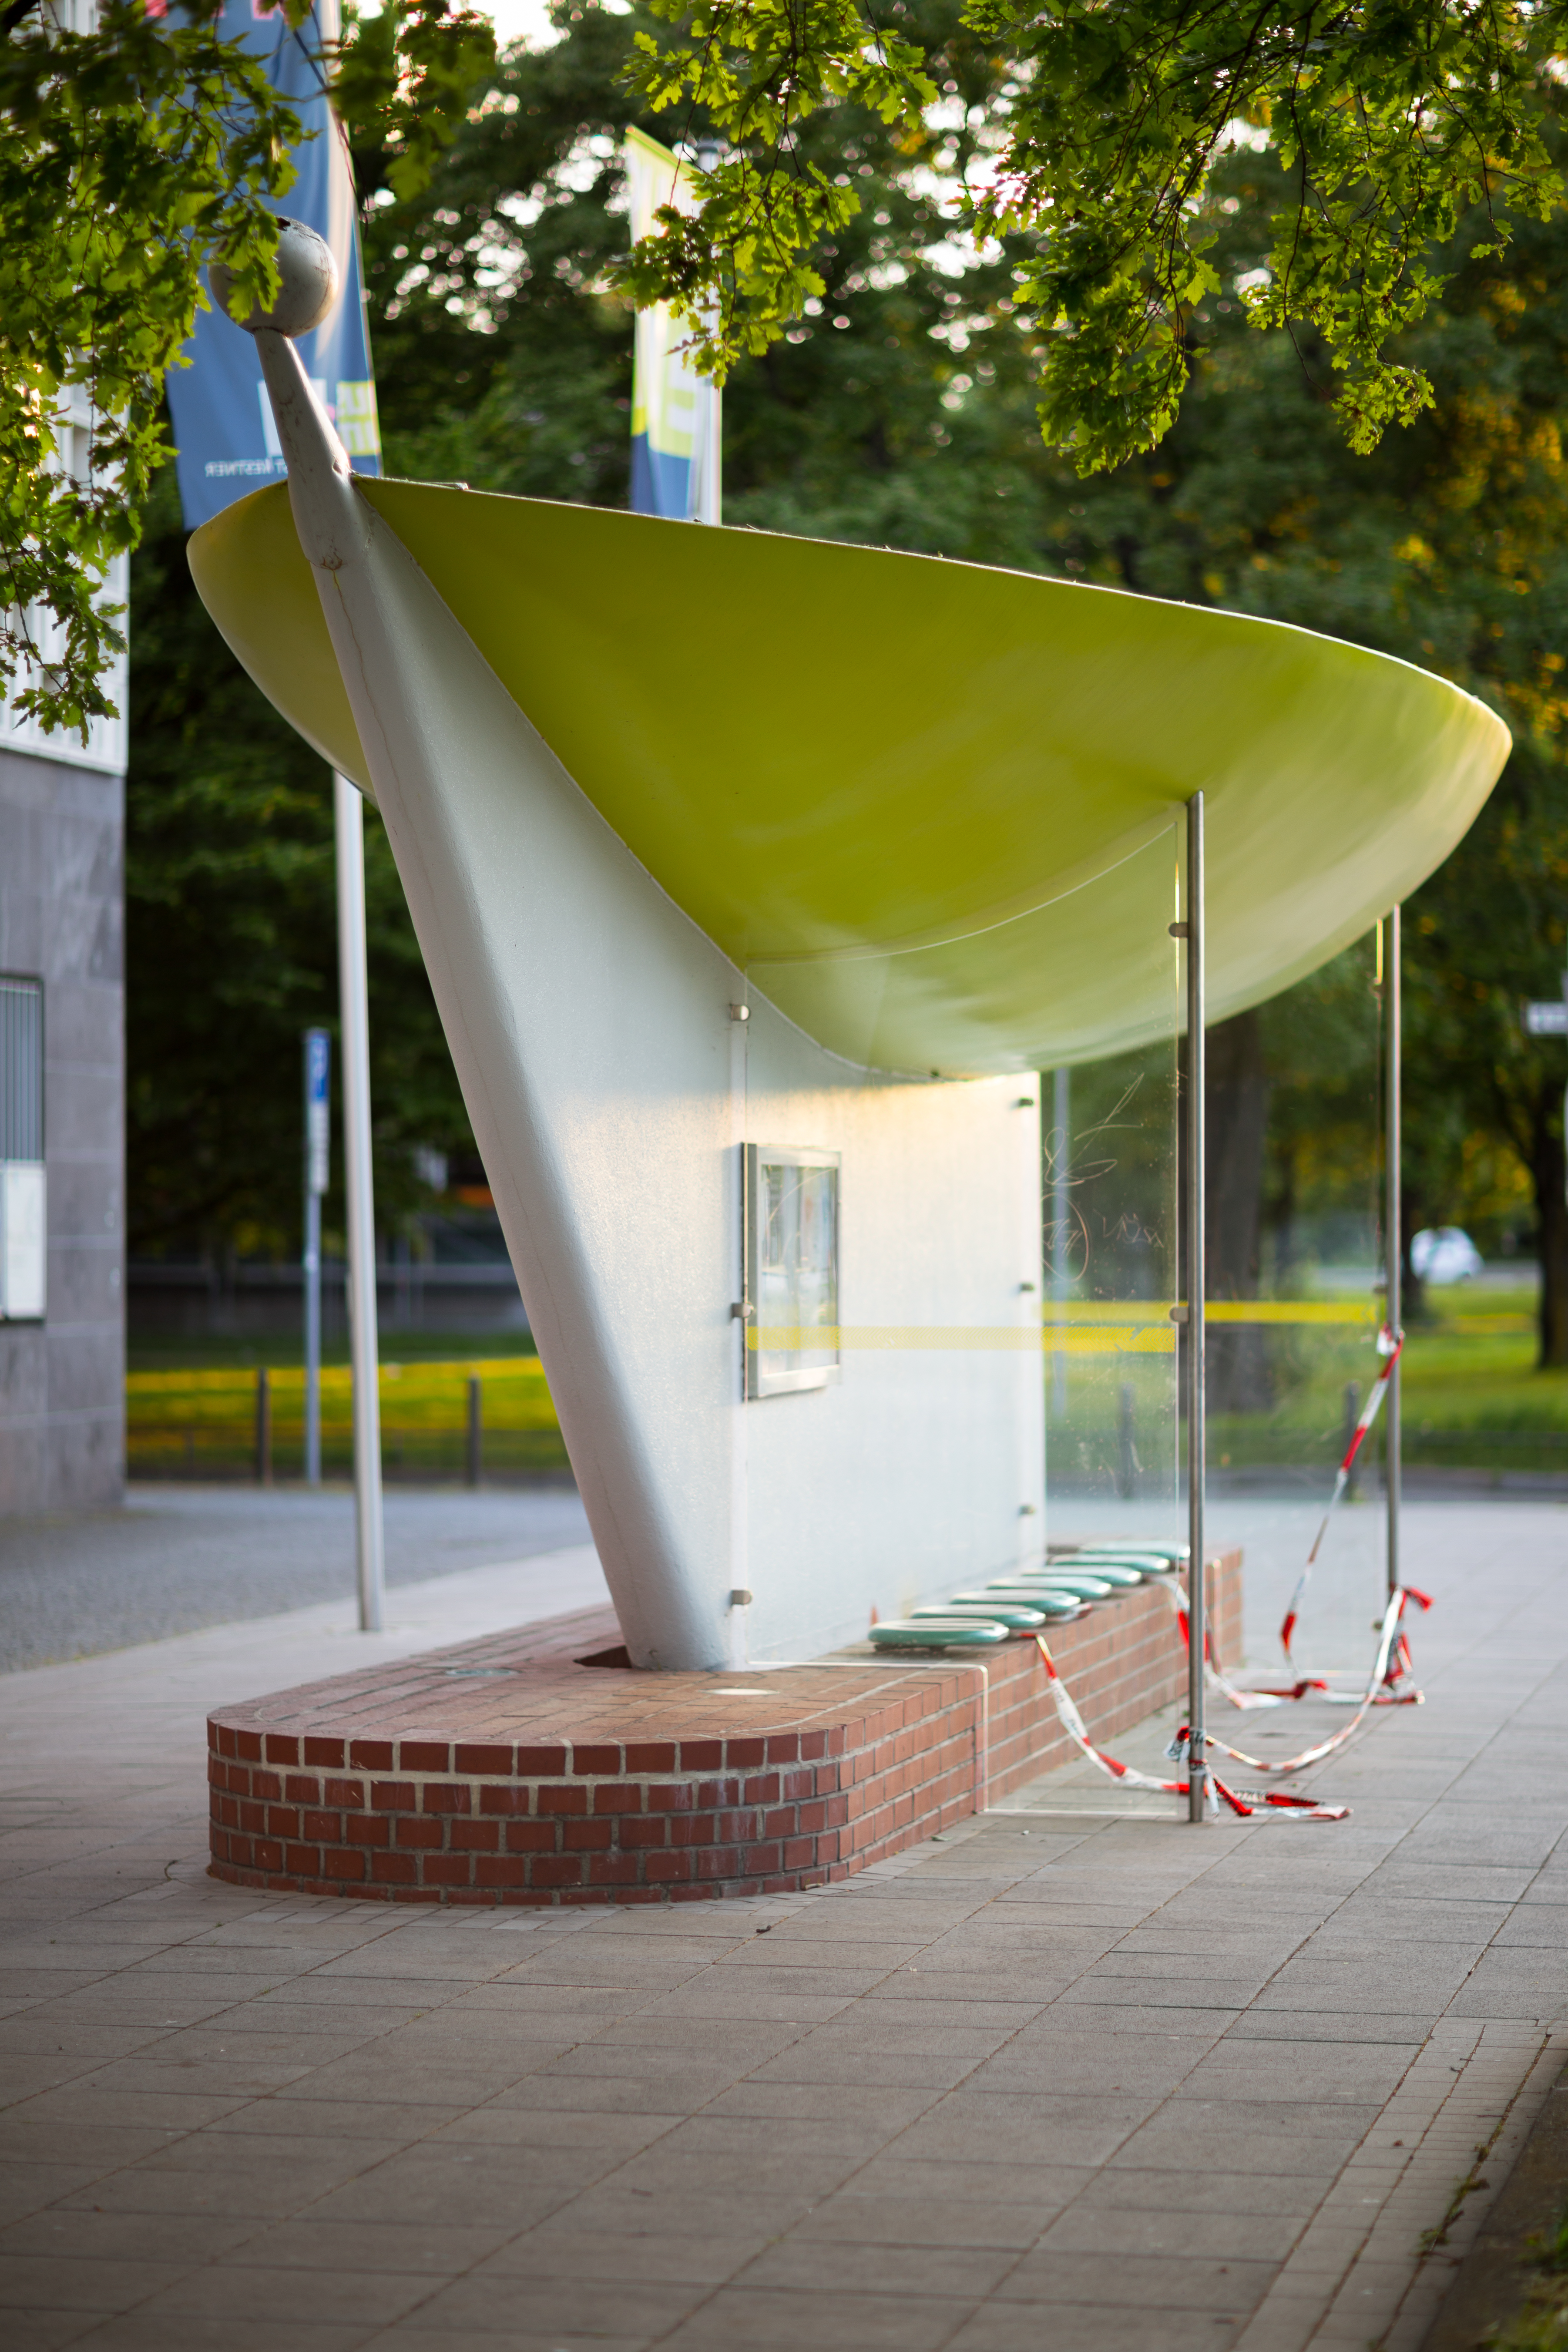 Usm Hannover file busstop massimo iosa ghini friedrichswall mitte hannover